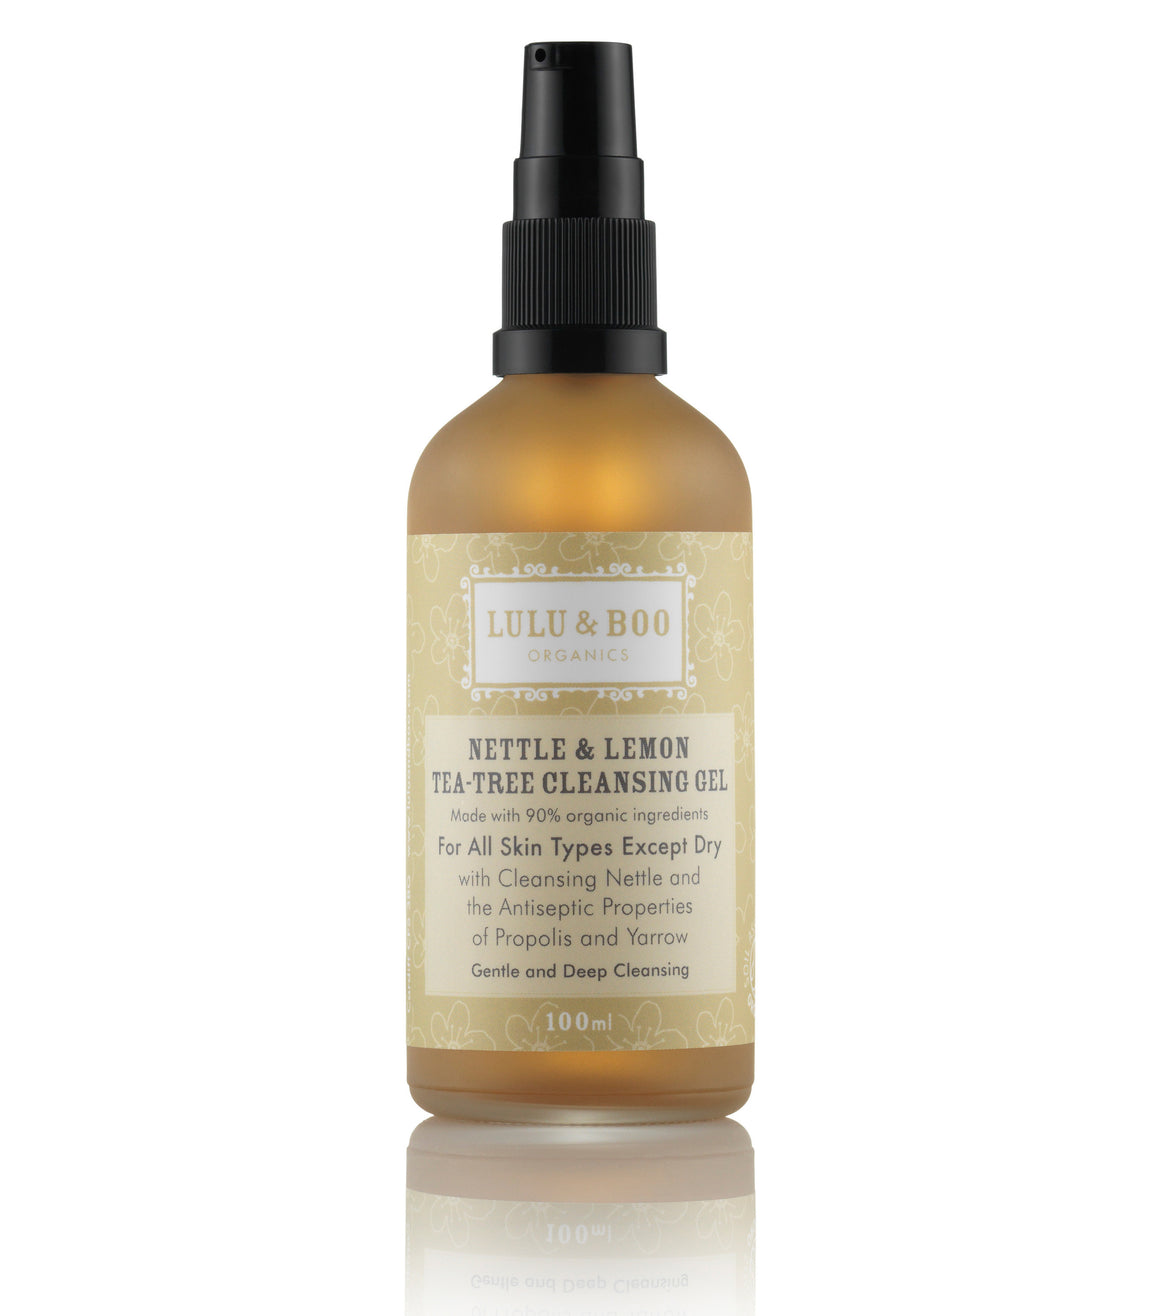 Nettle & Lemon Tea-Tree Cleansing Gel - Lulu & Boo Organics